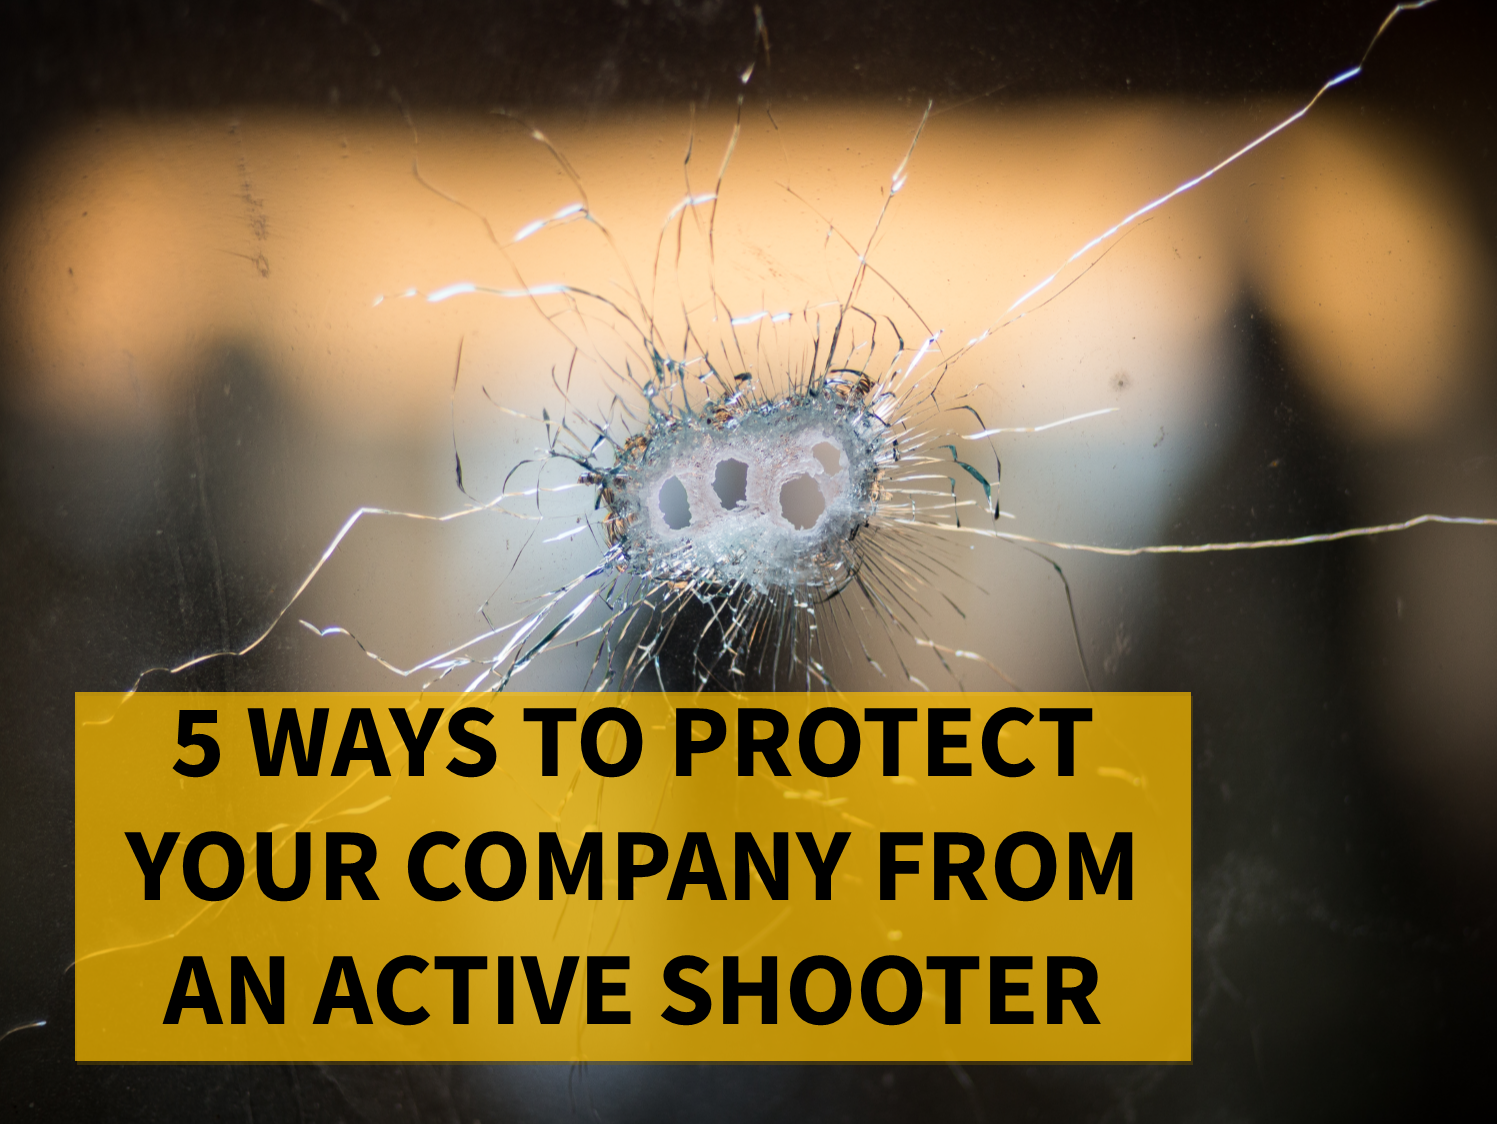 5 Ways To Prepare Your Company From An Active Shooter